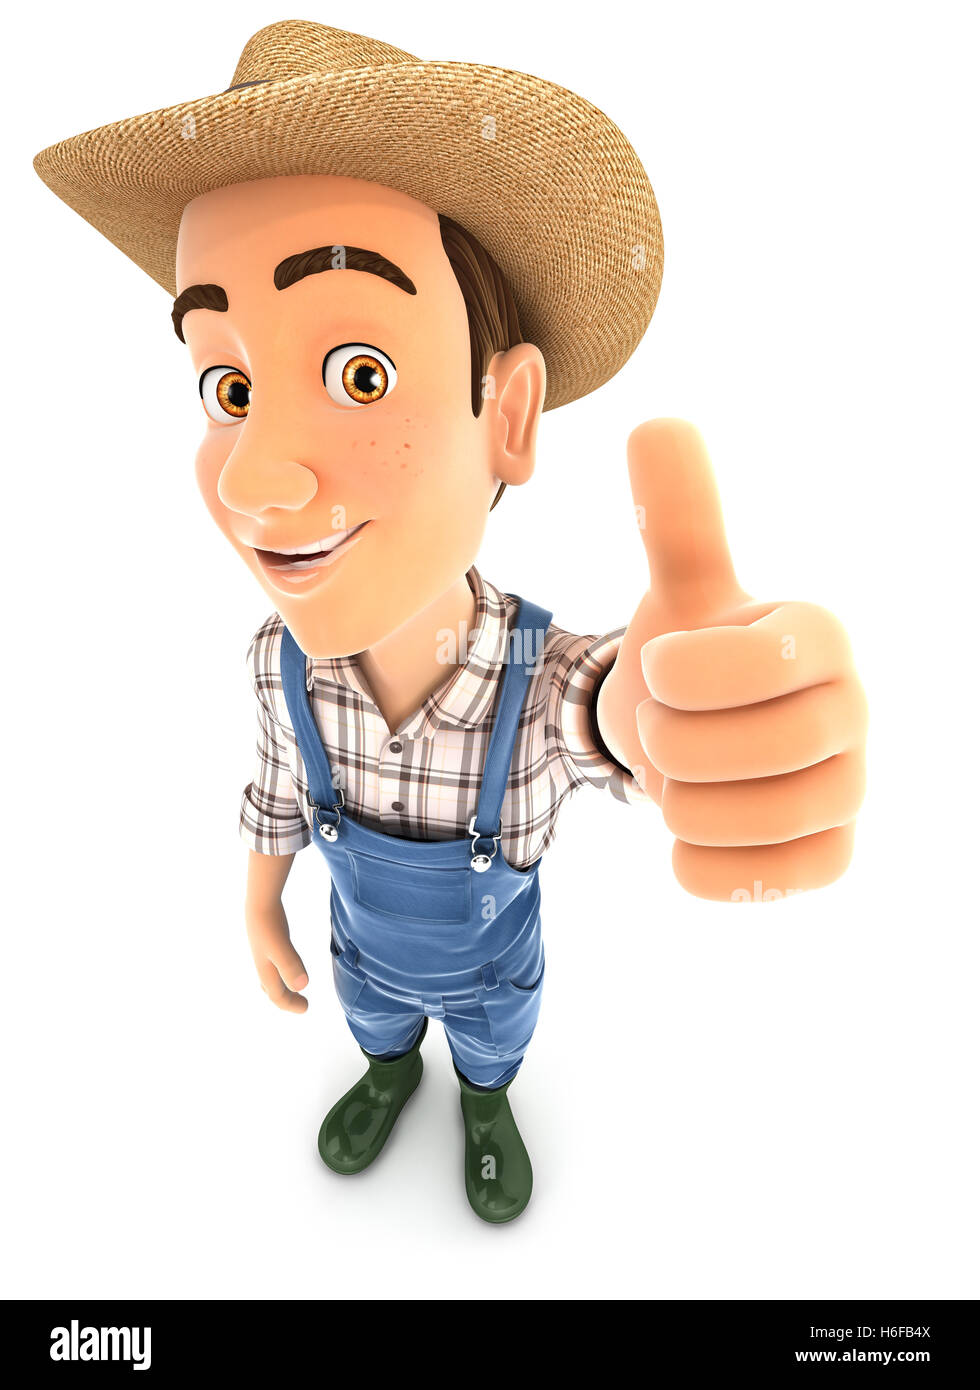 3d farmer positive pose with thumb up, illustration with isolated white background Stock Photo